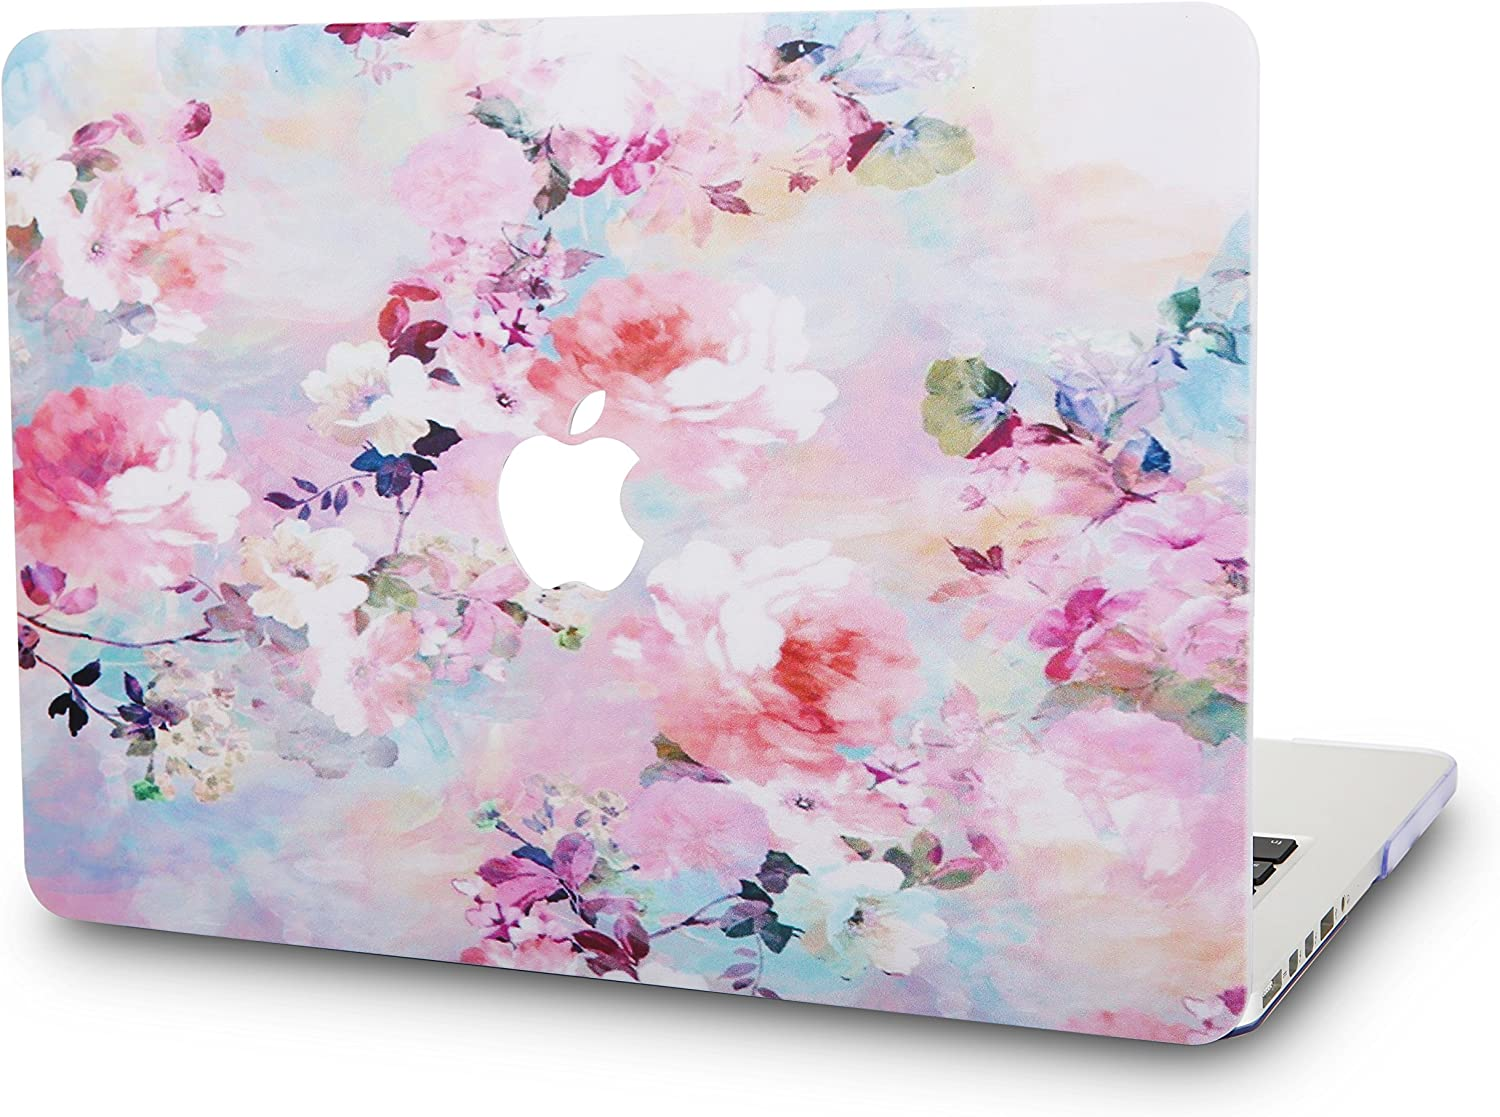 """KECC Laptop Case for MacBook Pro 13"""" (2020/2019/2018/2017/2016) Plastic Hard Shell Cover A2289/A2251/A2159/A1989/A1706/A1708 Touch Bar (Flower 7)"""